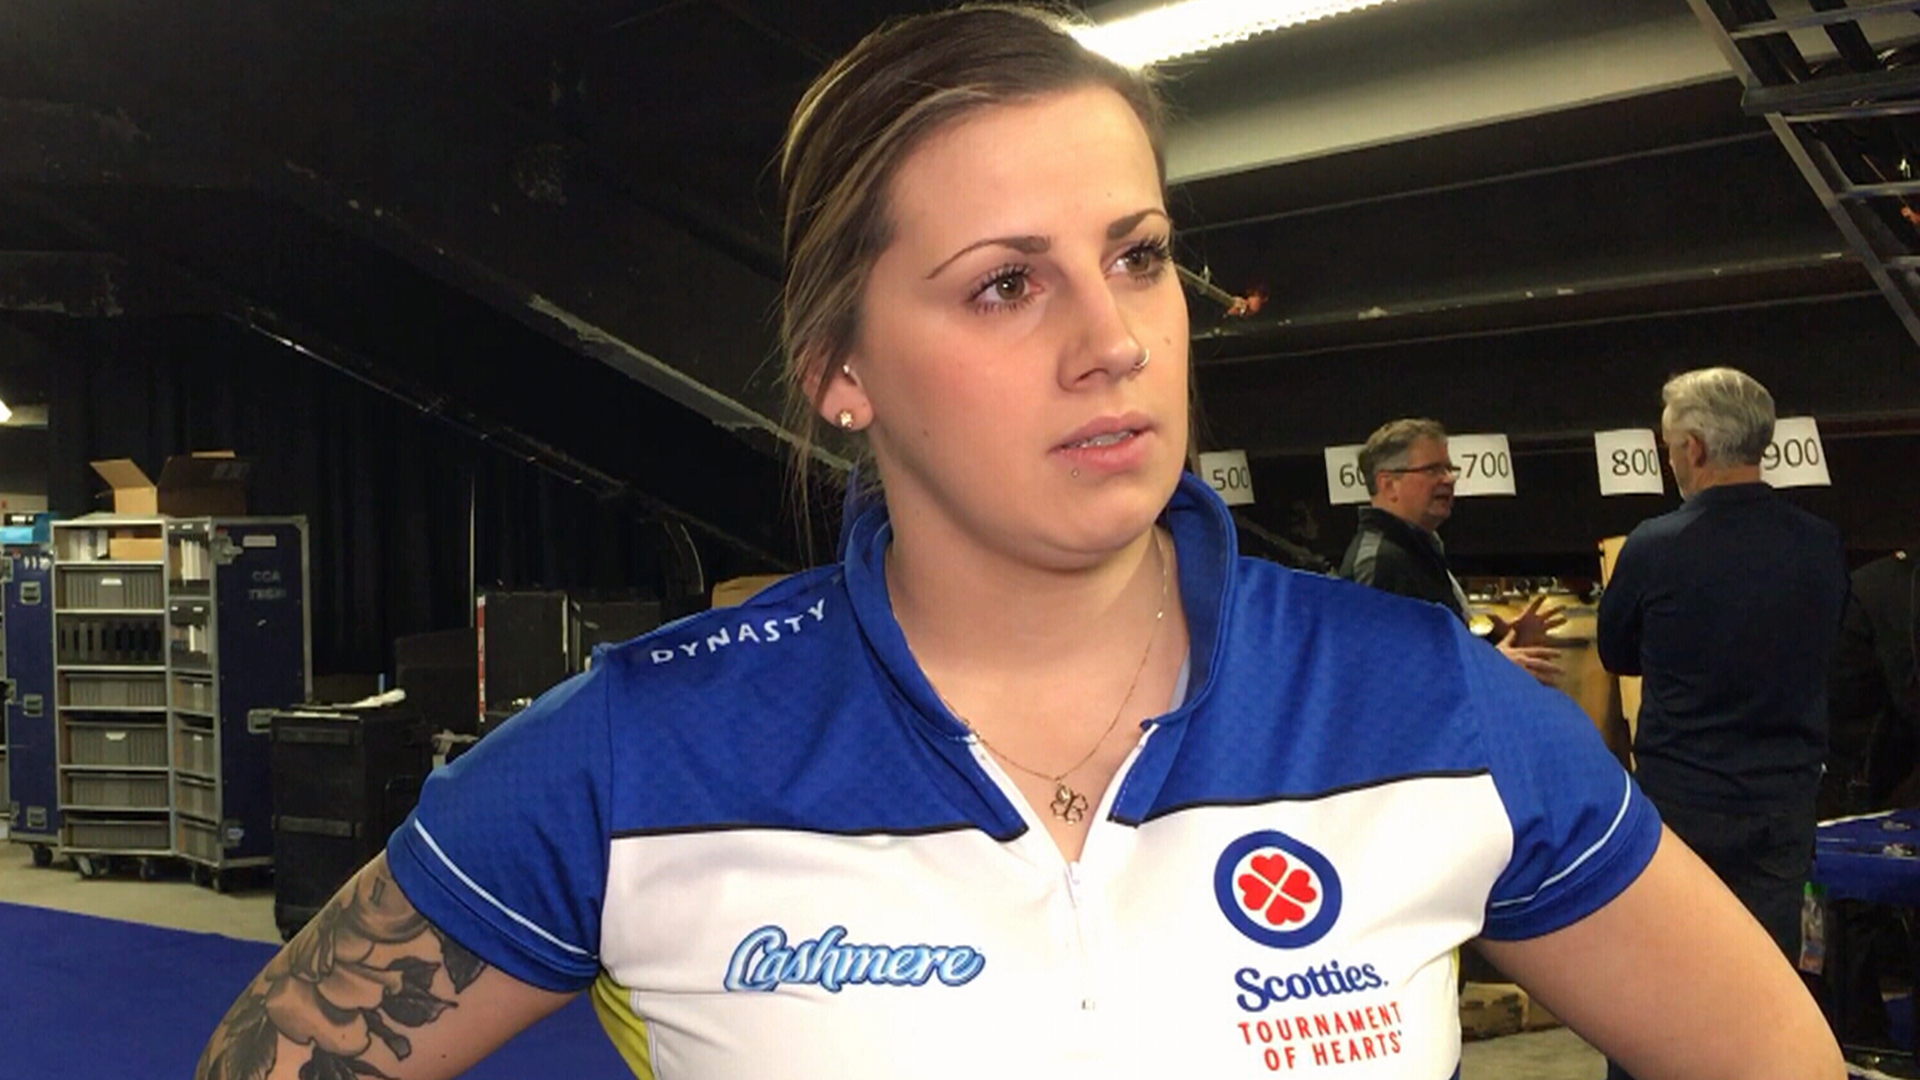 Cameron on what has worked well for Alberta at the Scotties